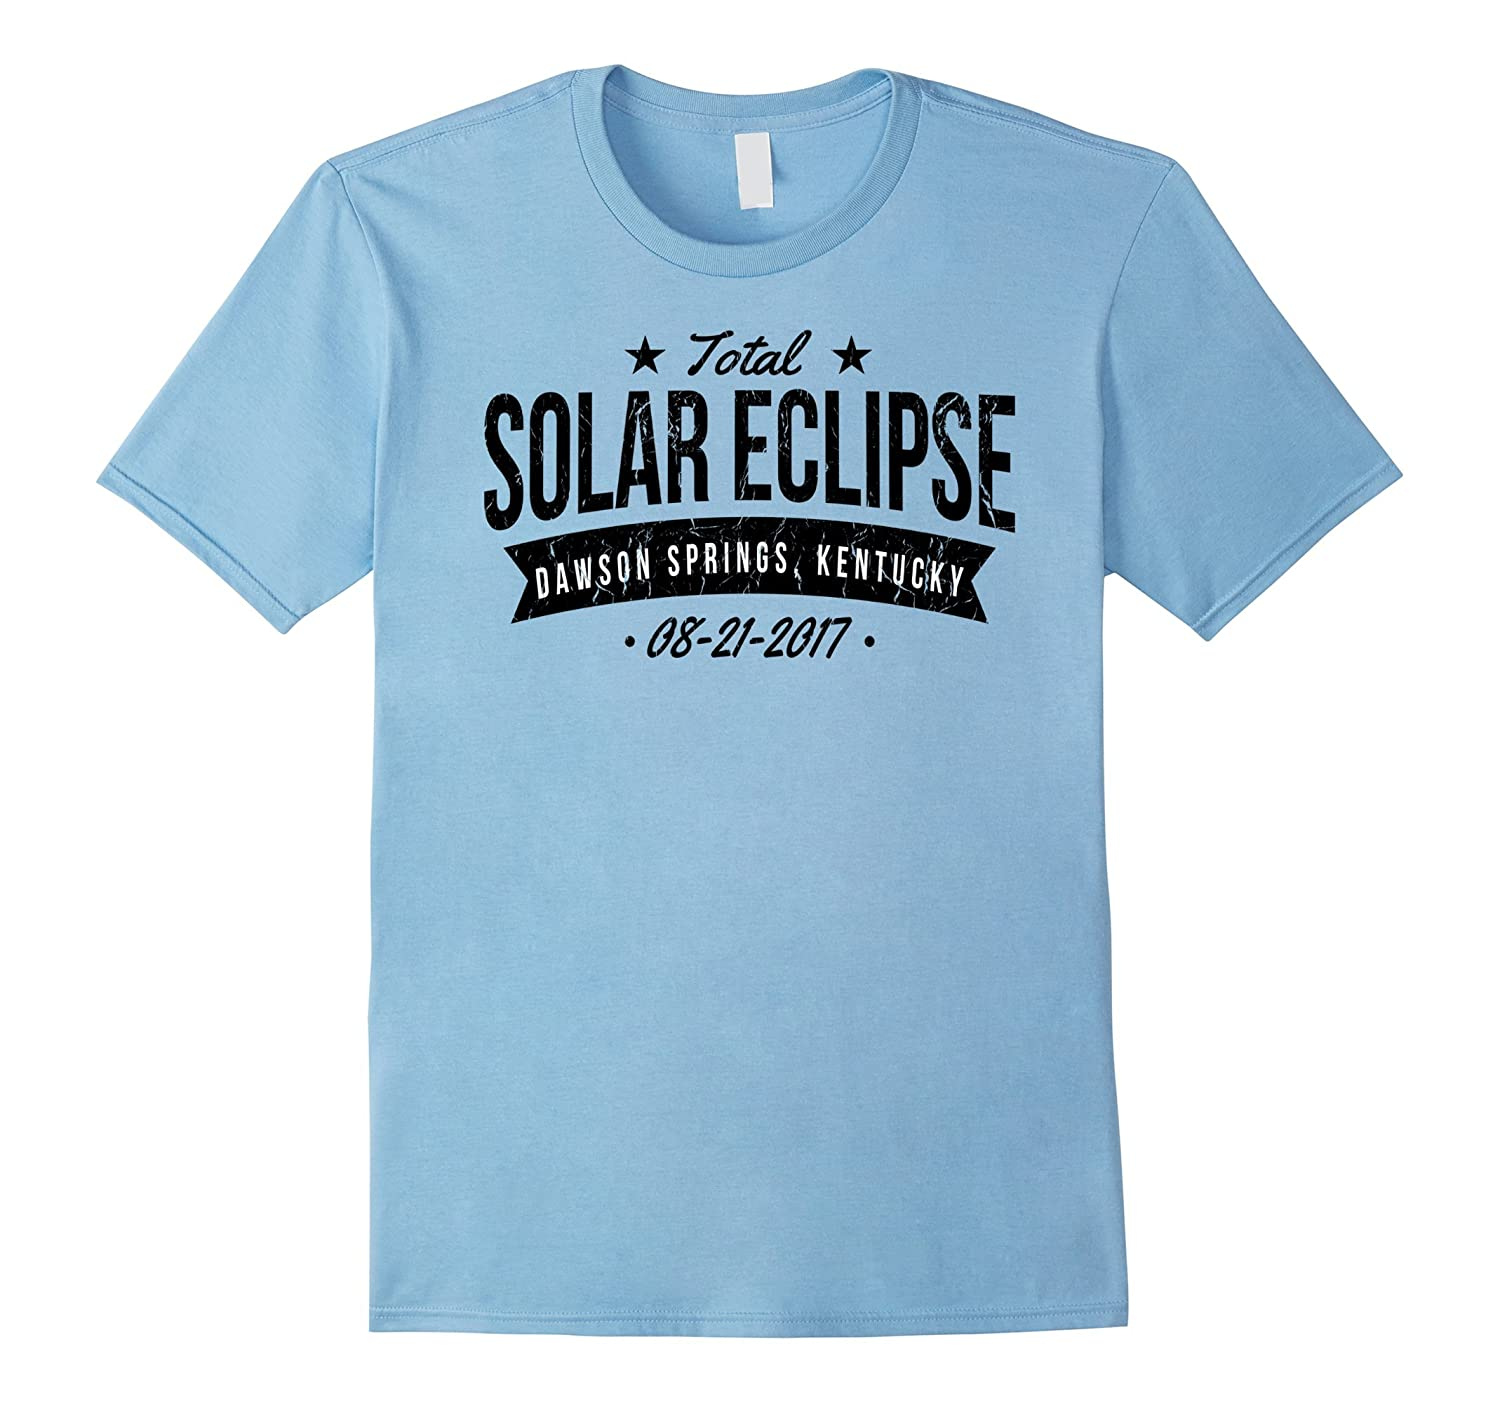 Solar Eclipse Dawson Springs KY August 2017 Gift T-Shirt